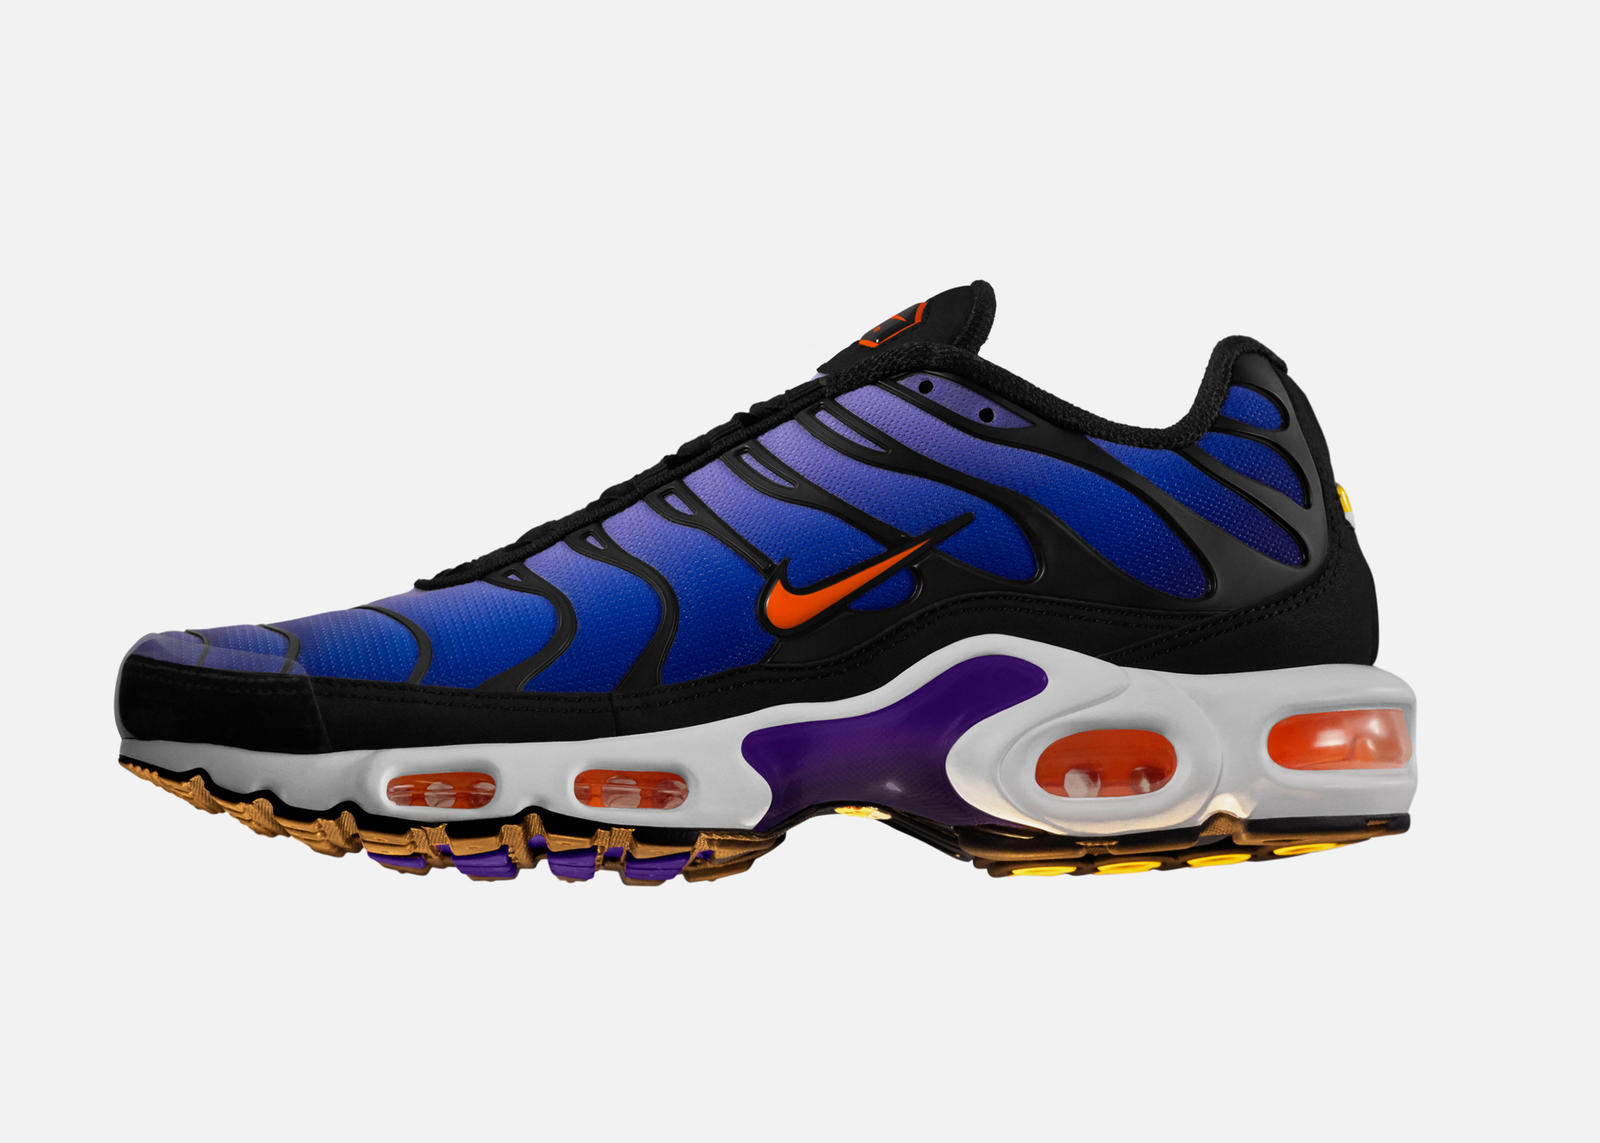 abeb1b1854 The Untold Story of the Nike Air Max Plus 18